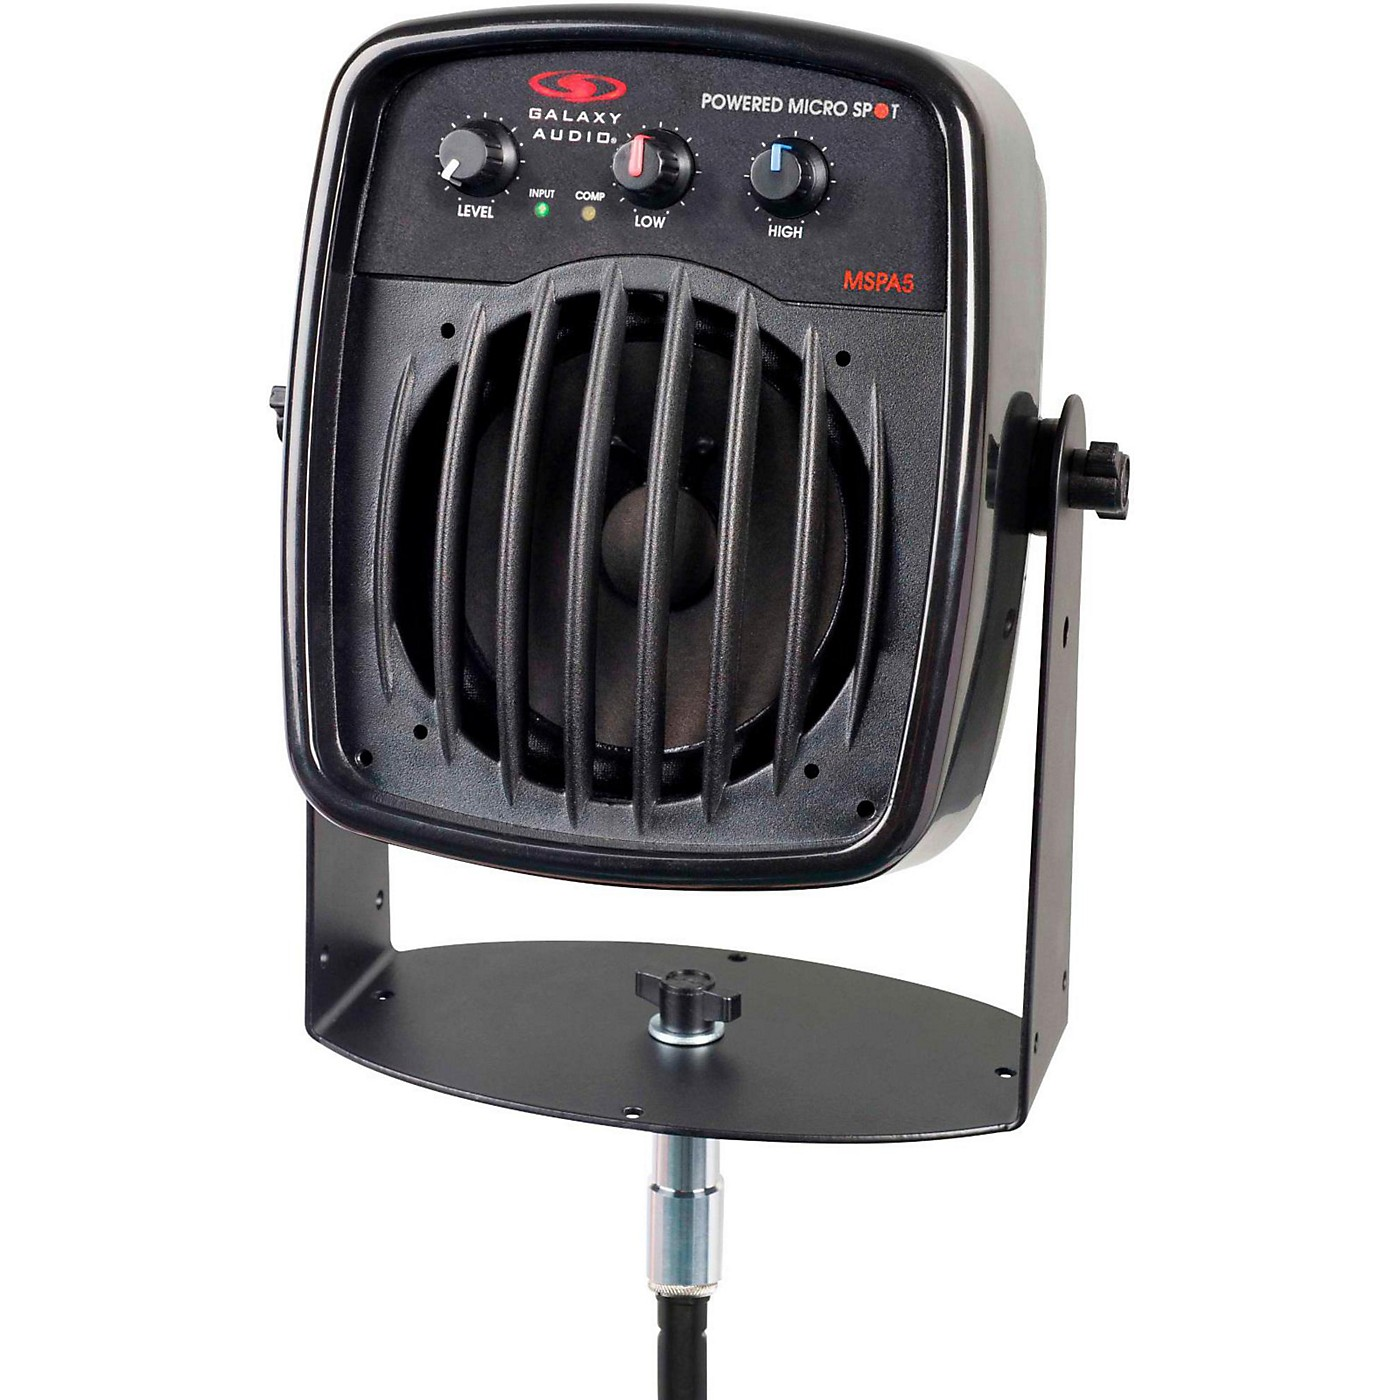 Galaxy Audio Galaxy Audio MSPA5 100W Powered Micro Spot  Compact Personal Hot Spot Stage Monitor<br> thumbnail